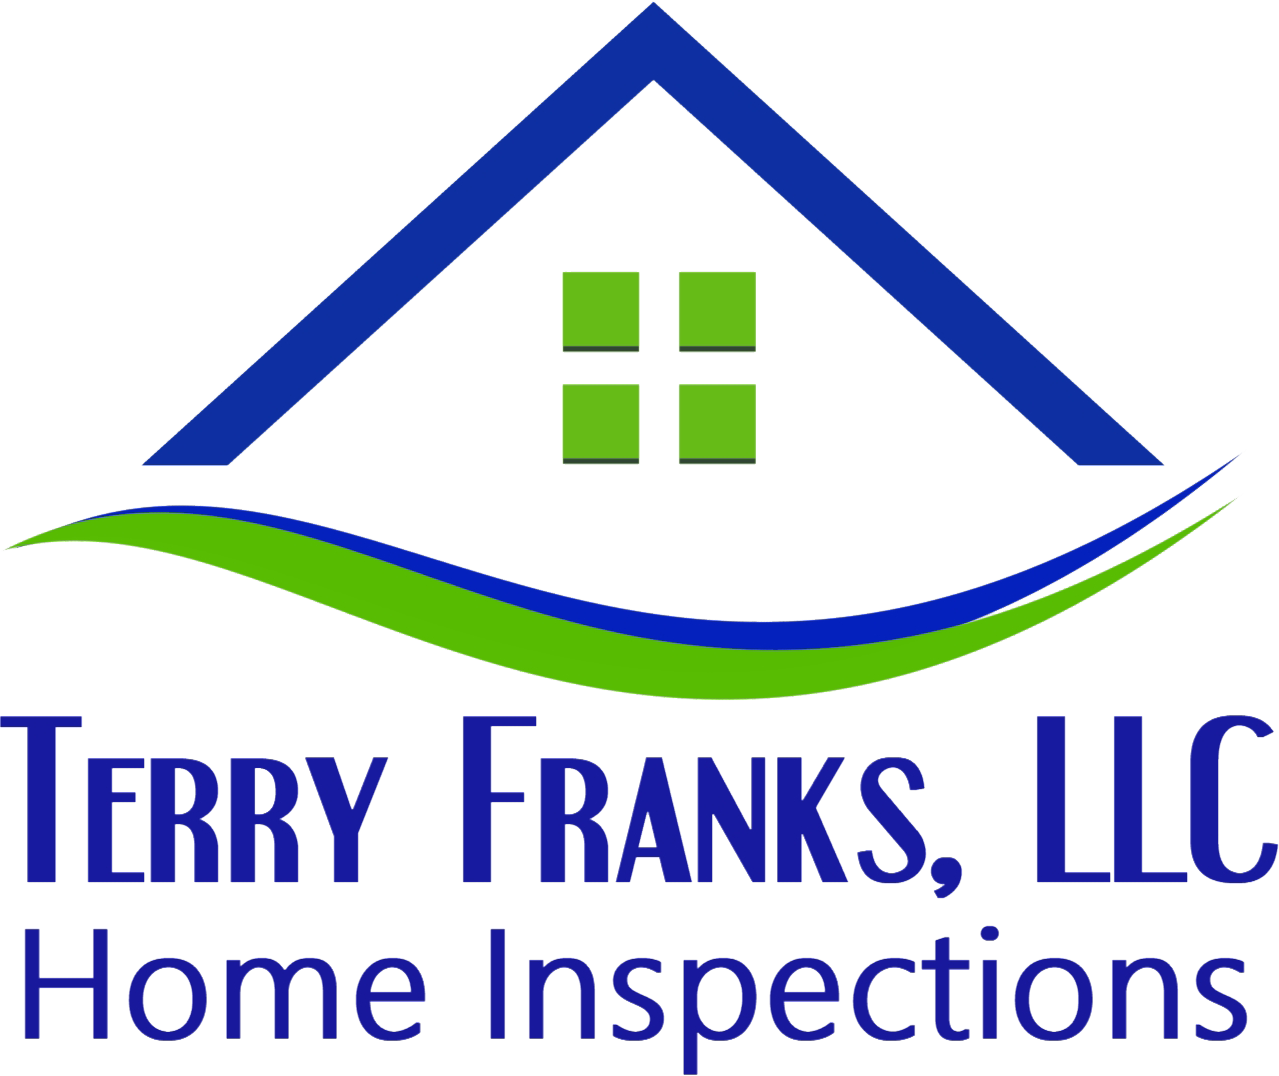 Terry Franks, LLC Home Inspections